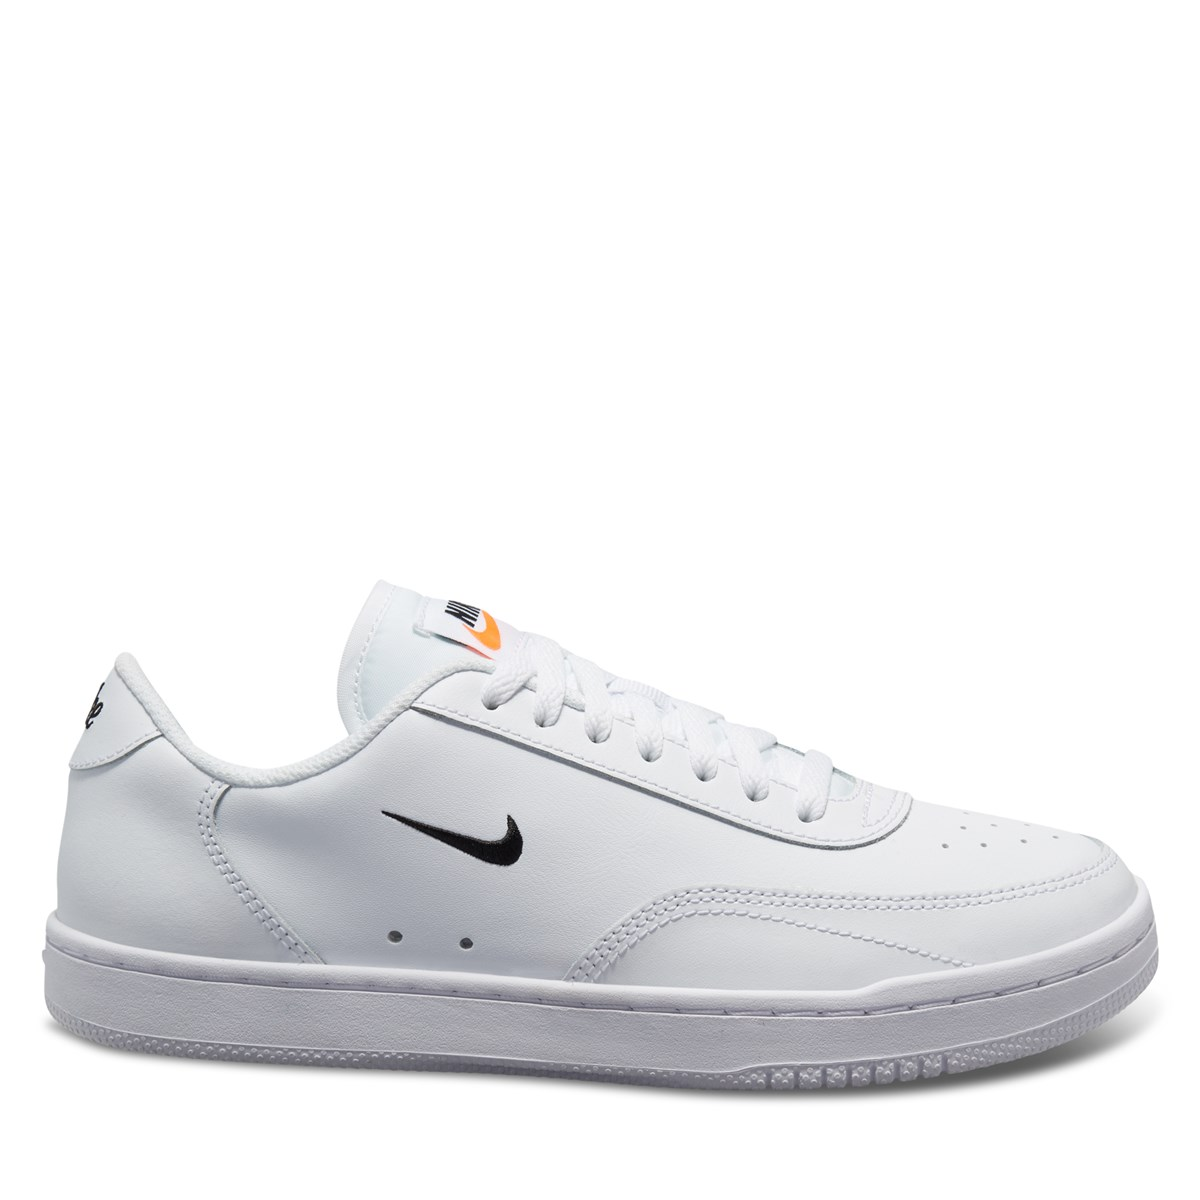 Women's Court Vintage Sneakers in White